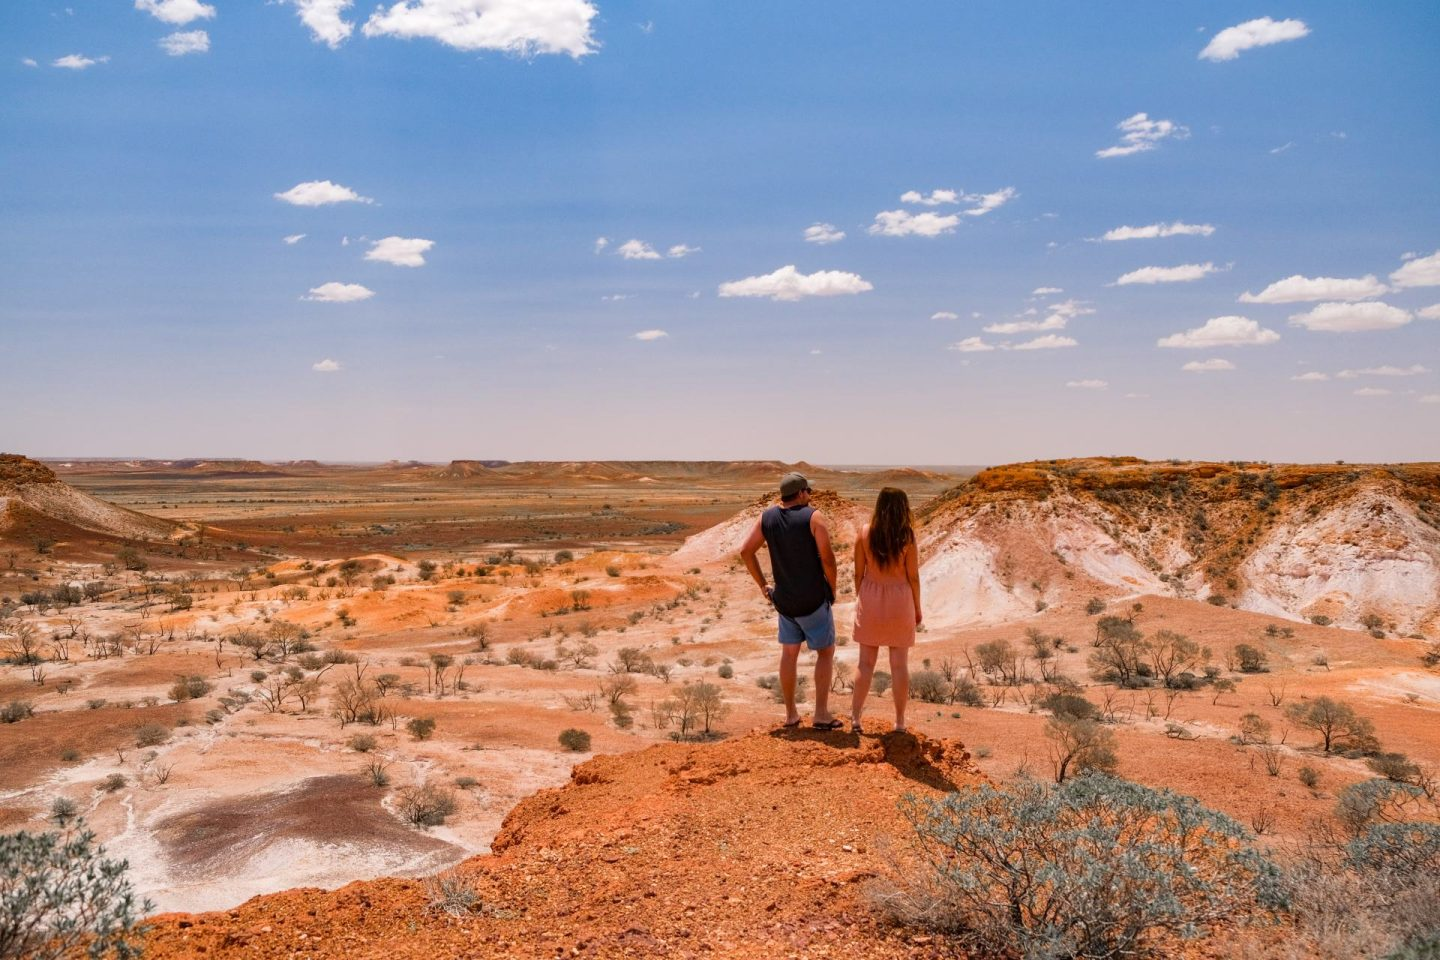 15 Very Unique Things To Do In Coober Pedy